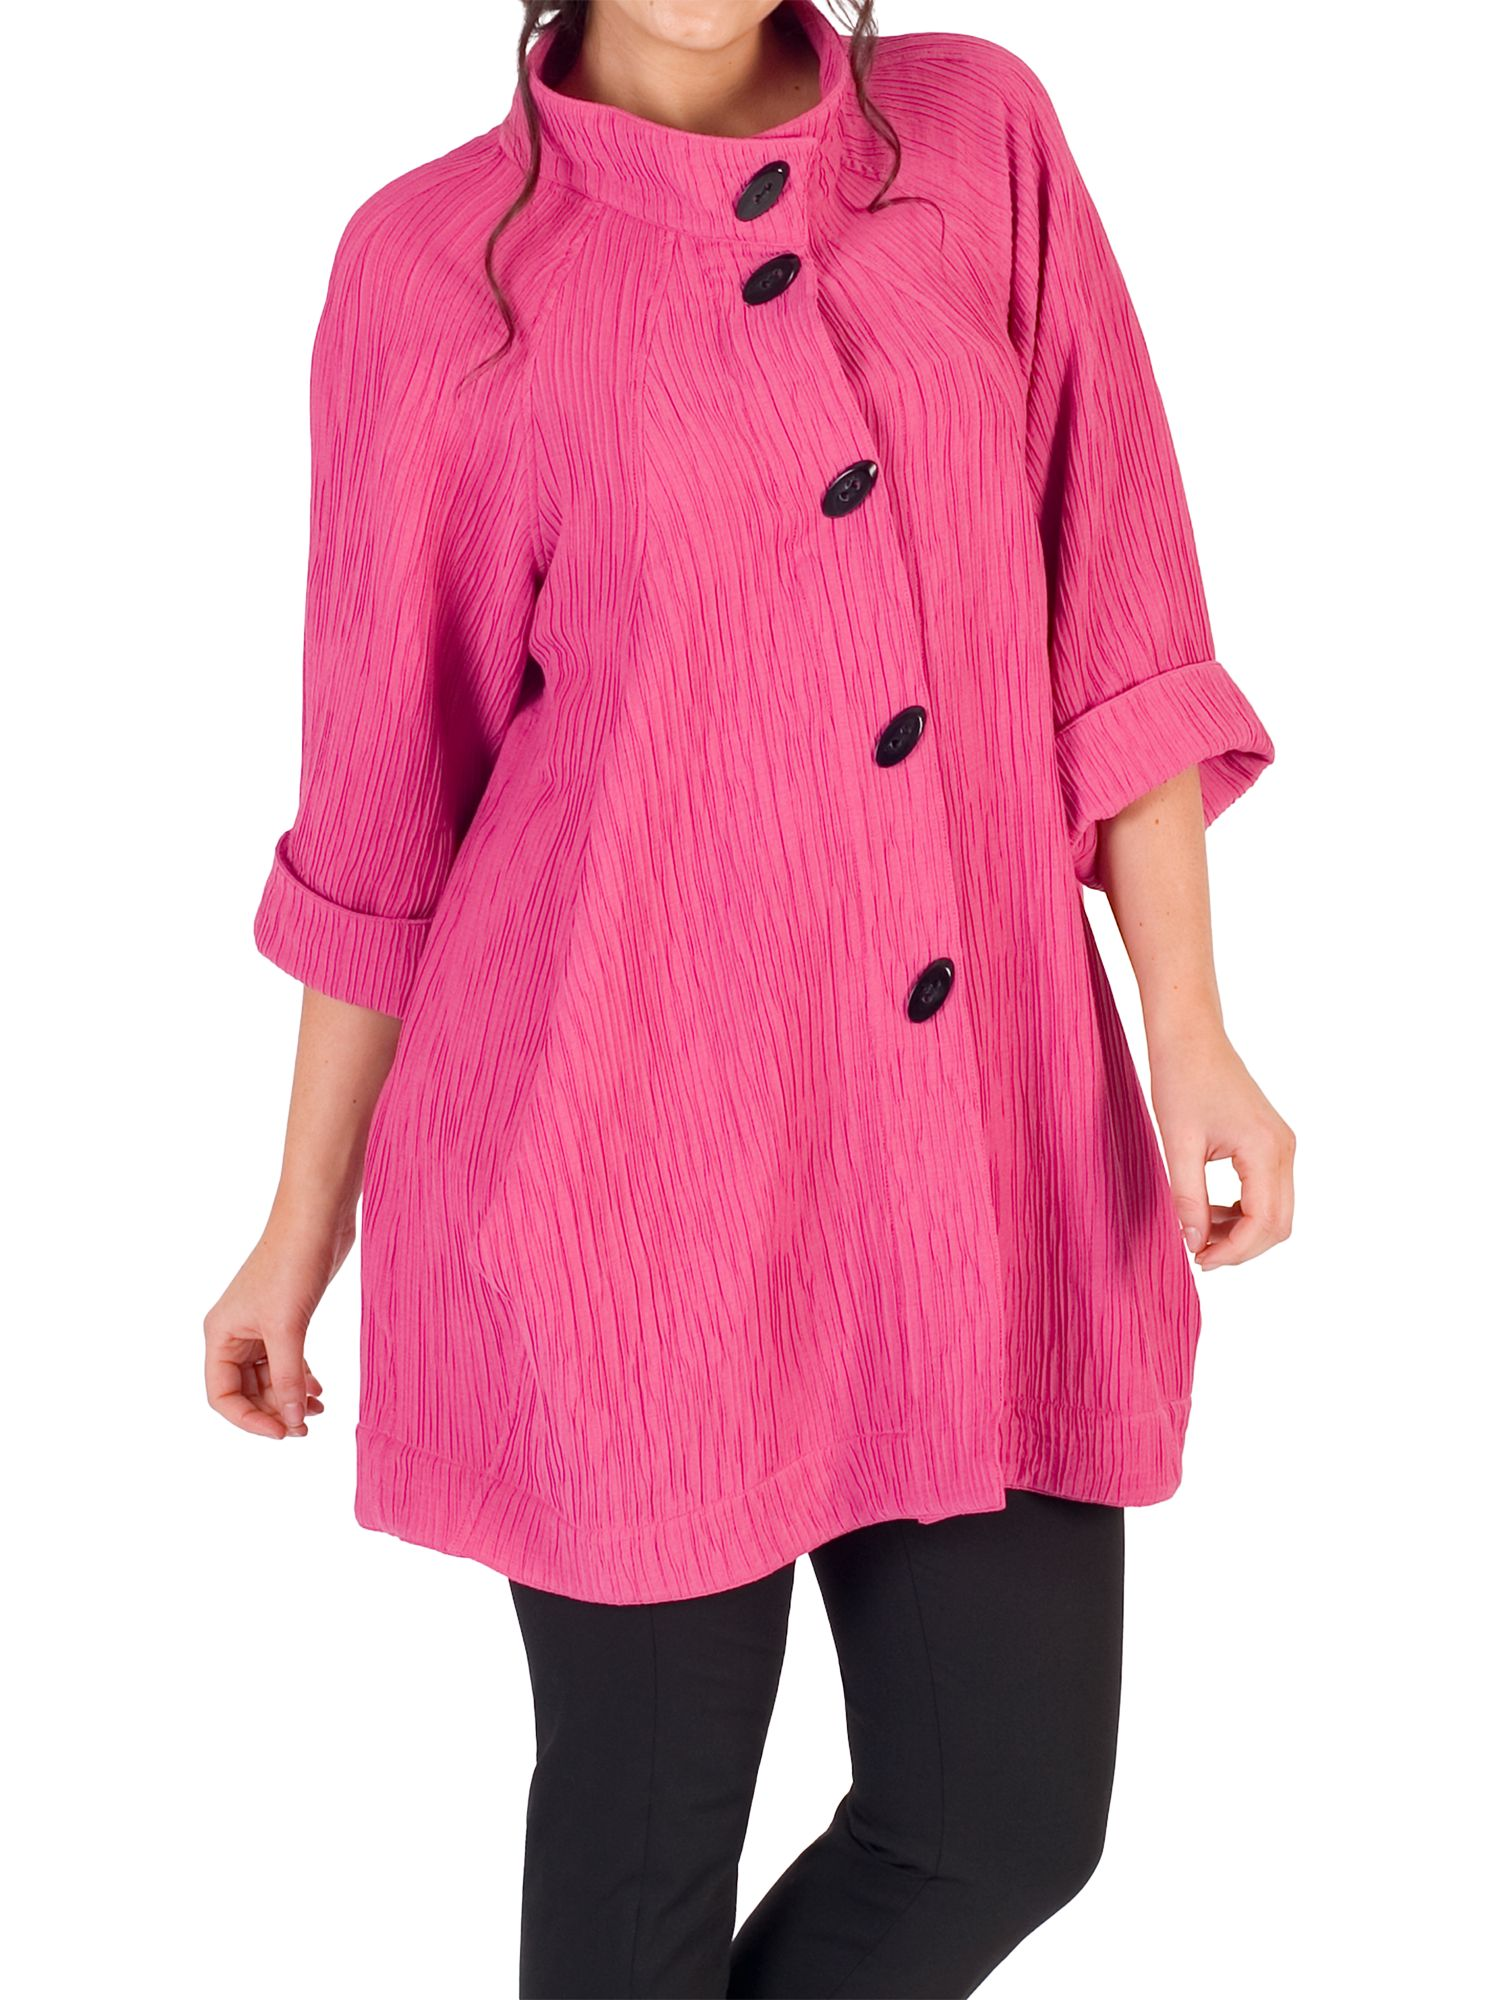 Chesca Chesca Textured Jacquard Coat, Rose Pink